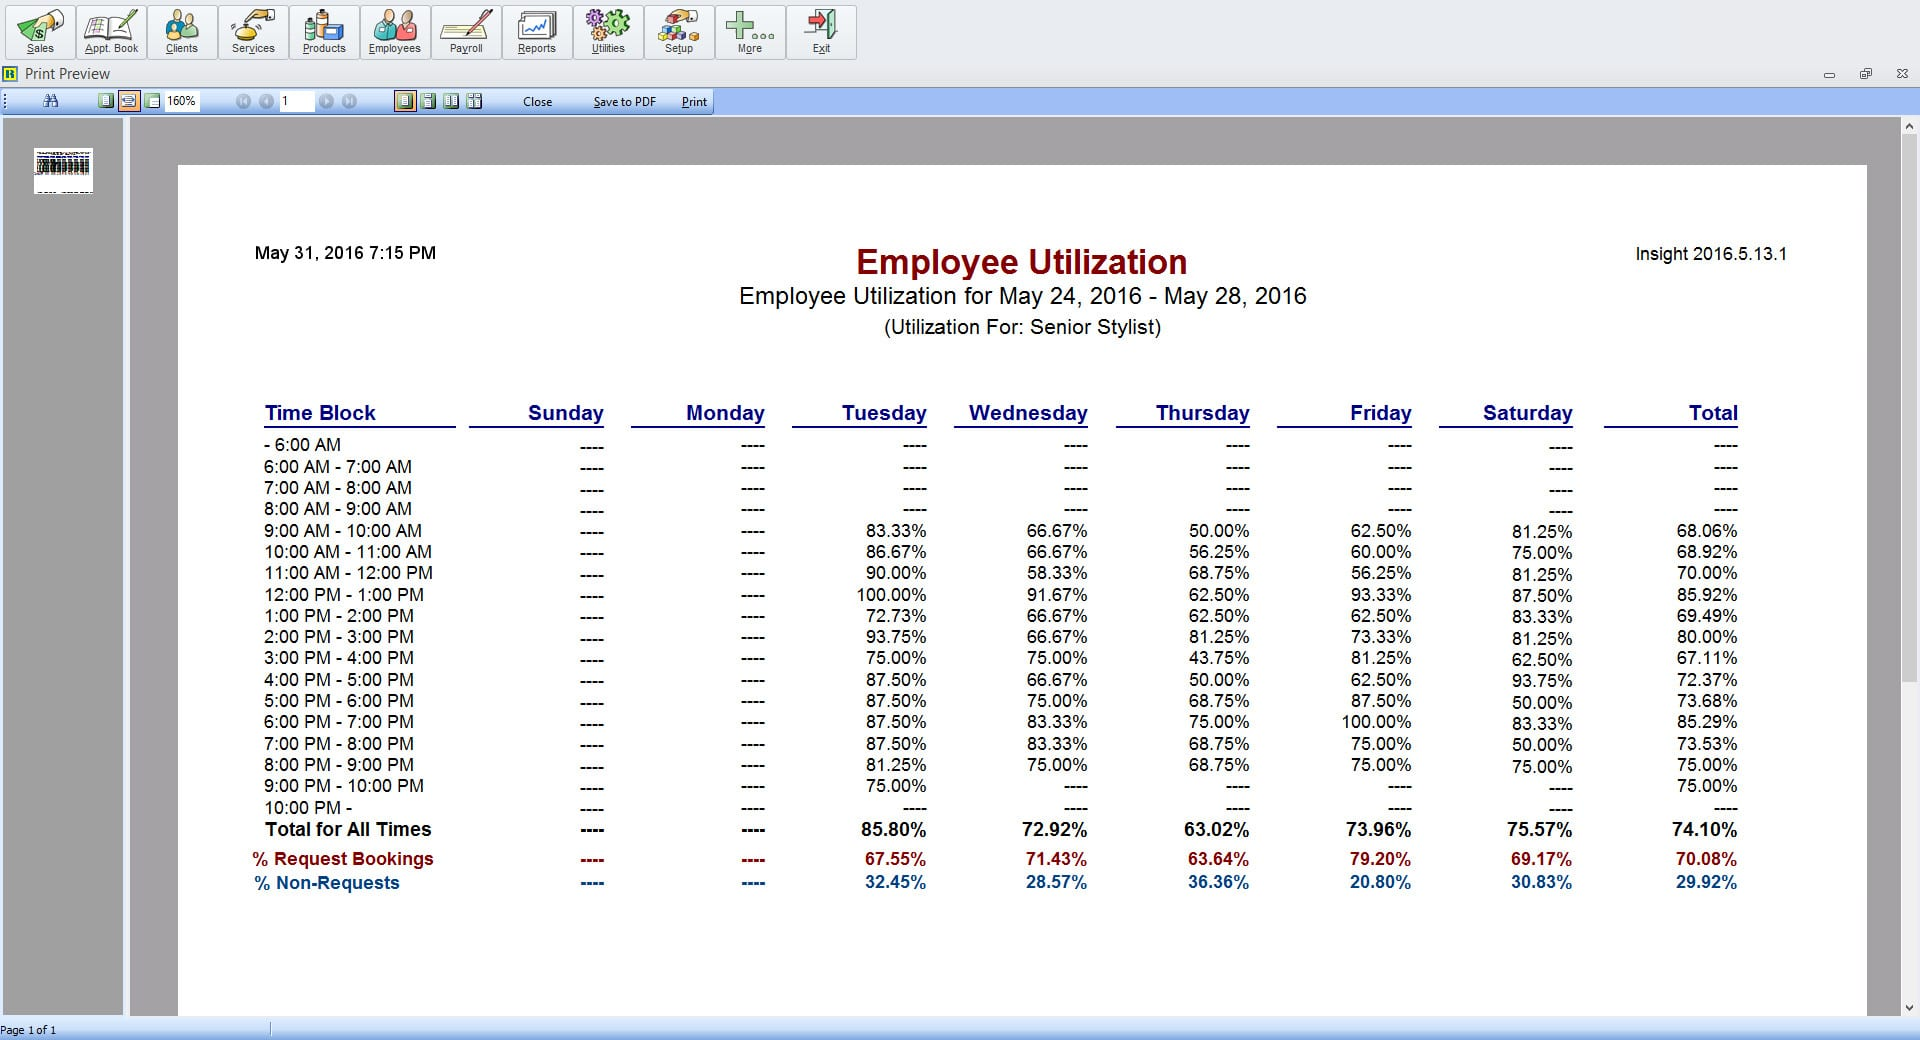 Employee Utilization Report